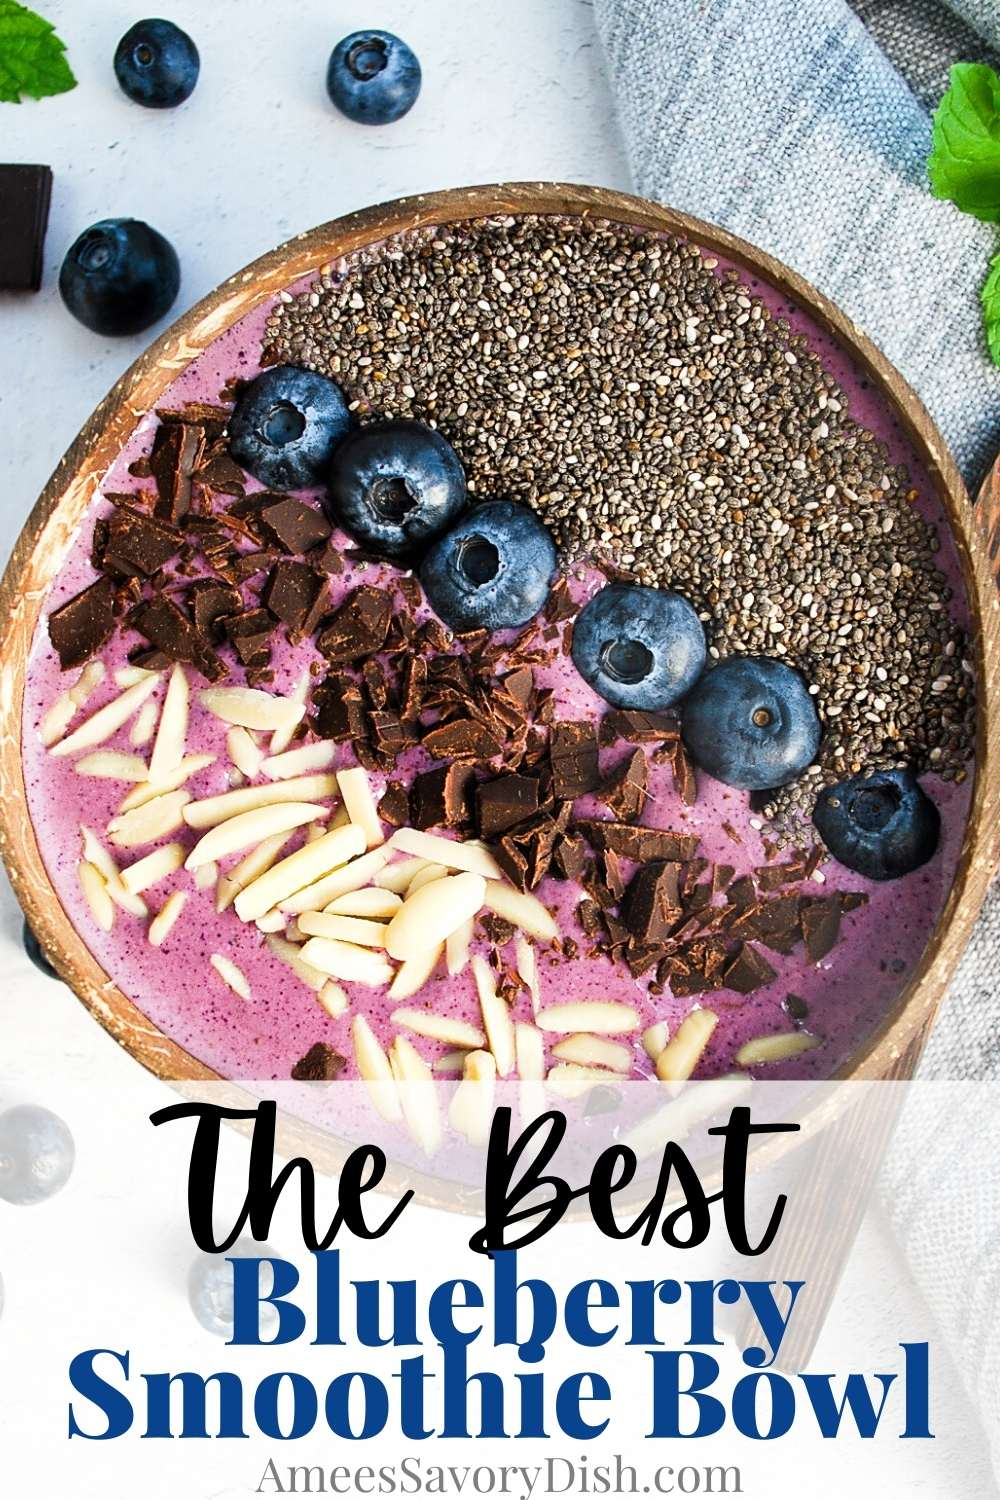 This Blueberry Smoothie Bowl recipe makes a thick and tasty smoothie bowl with banana, protein powder, yogurt, blueberry juice, and plenty of blueberries. This sweet treat is the perfect antioxidant and protein-packed healthy breakfast. via @Ameessavorydish